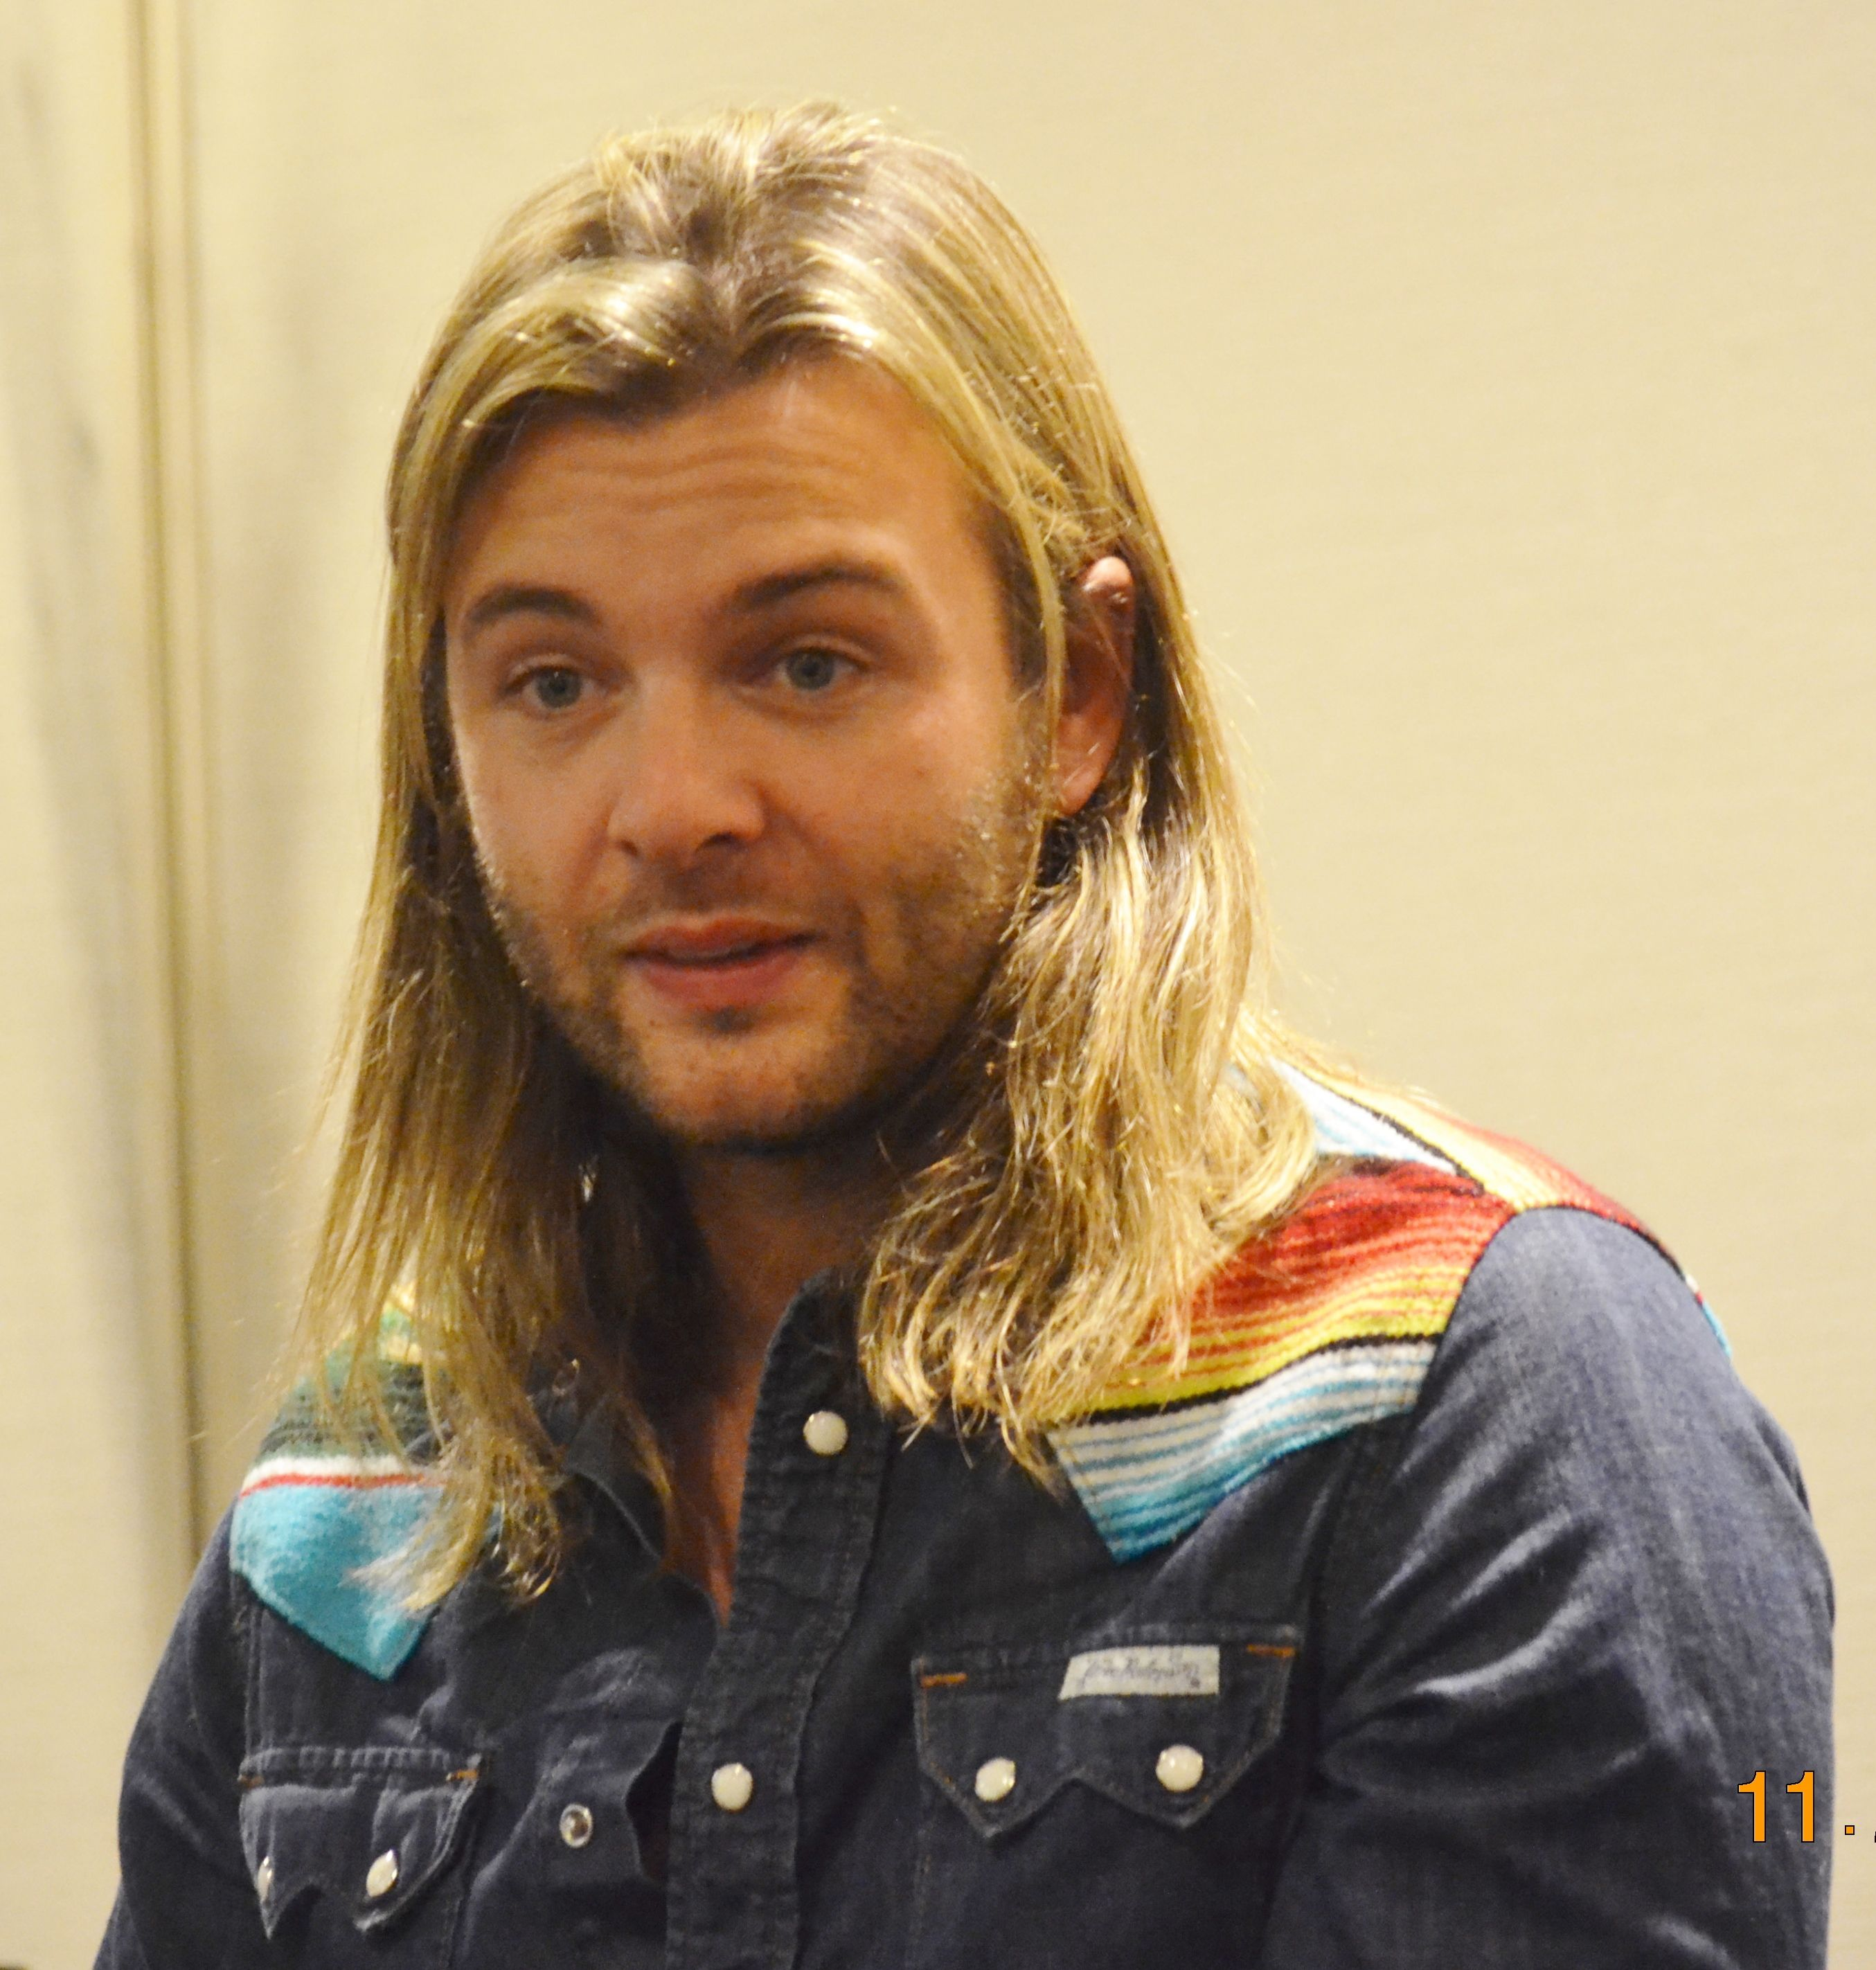 Keith harkin at the meet greet before the celtic thunder symphony keith harkin at the meet greet before the celtic thunder symphony show in des moines ia november 29 2014 m4hsunfo